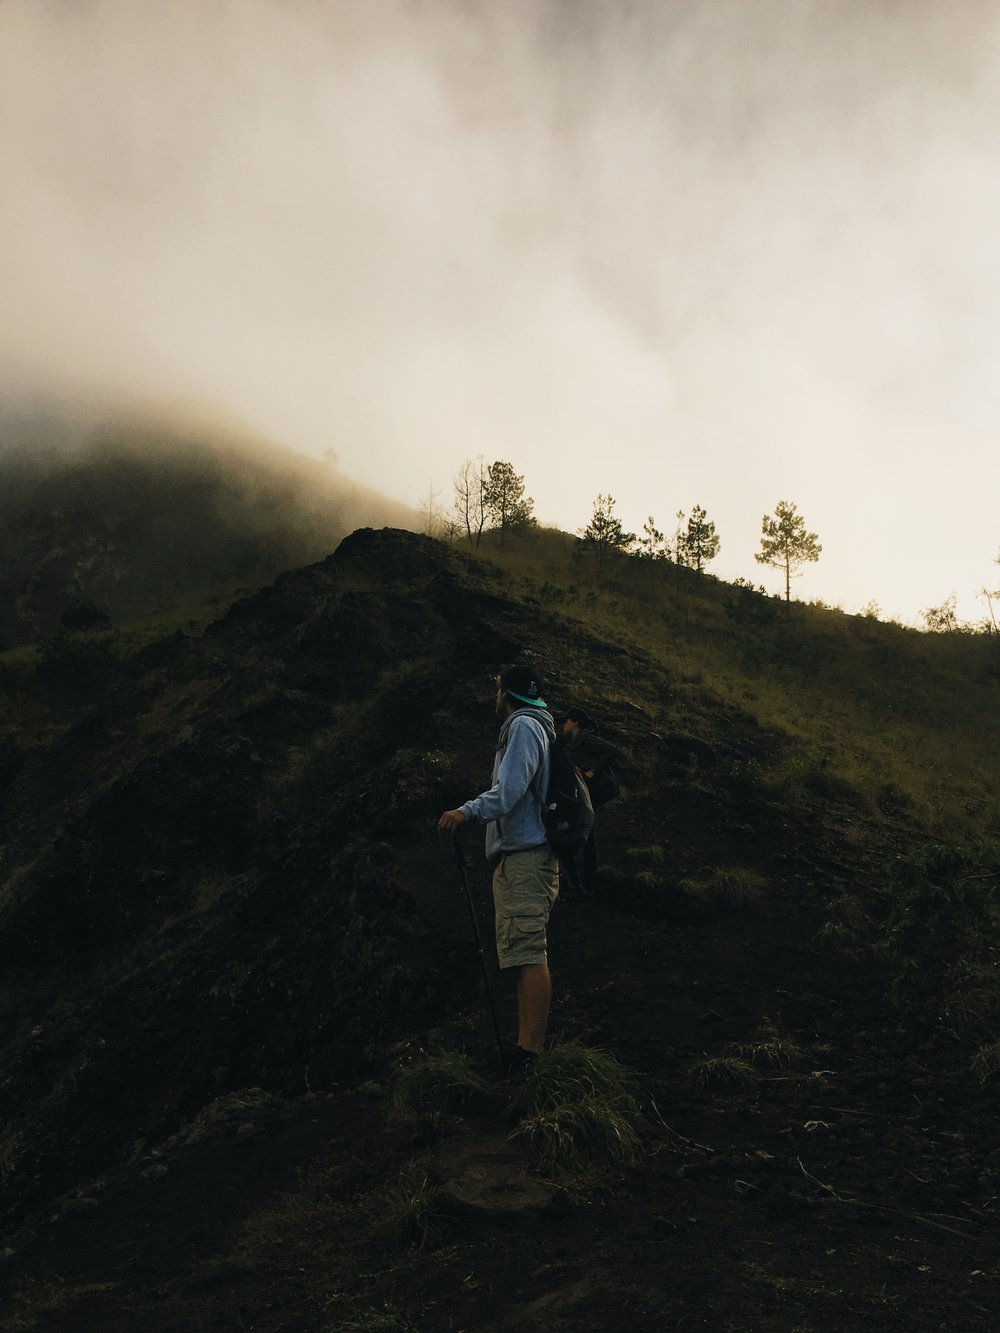 Mount Batur Sunrise Hike, Bali, illumelation.com